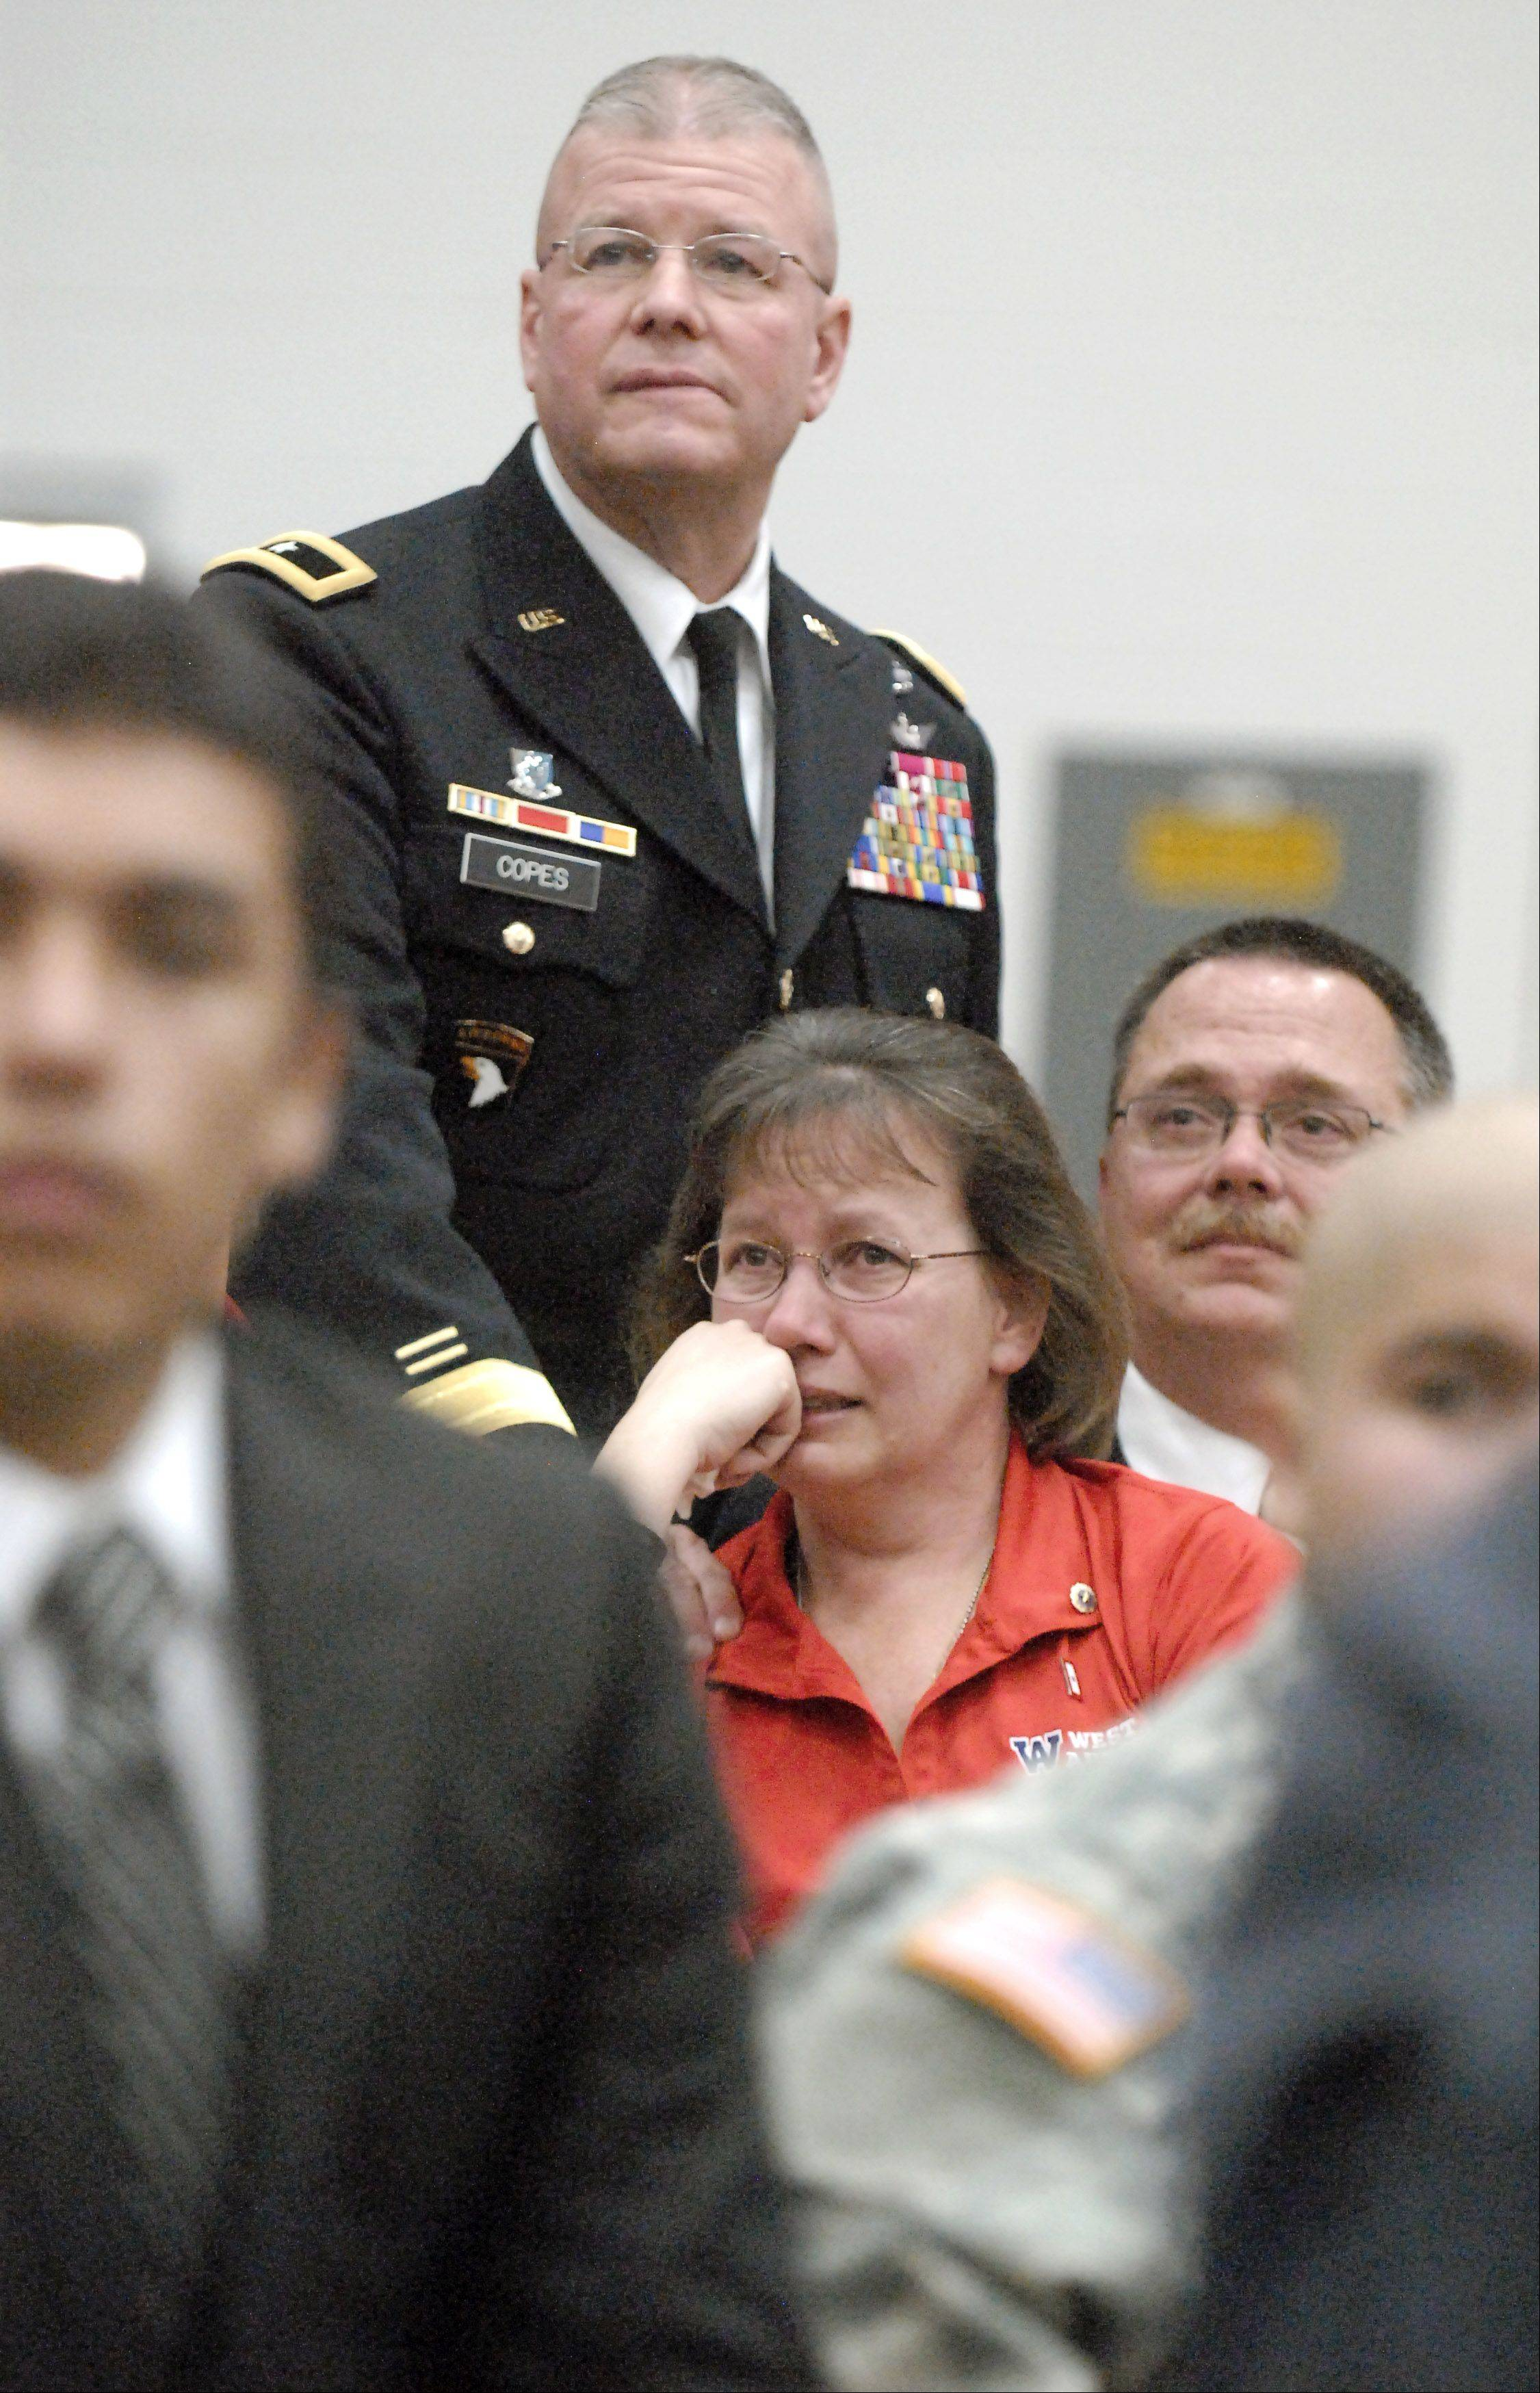 Mary and Bob Patterson are comforted by Brigadier General Brian Copes, Joint Chief of Staff with the Indiana National Guard, as they watch a video tribute to their late son and West Aurora High School alumni, SPC Christopher Alexander Patterson, at West Aurora High School's Veterans Day celebration on Friday, November 9. Patterson was killed on January 6.